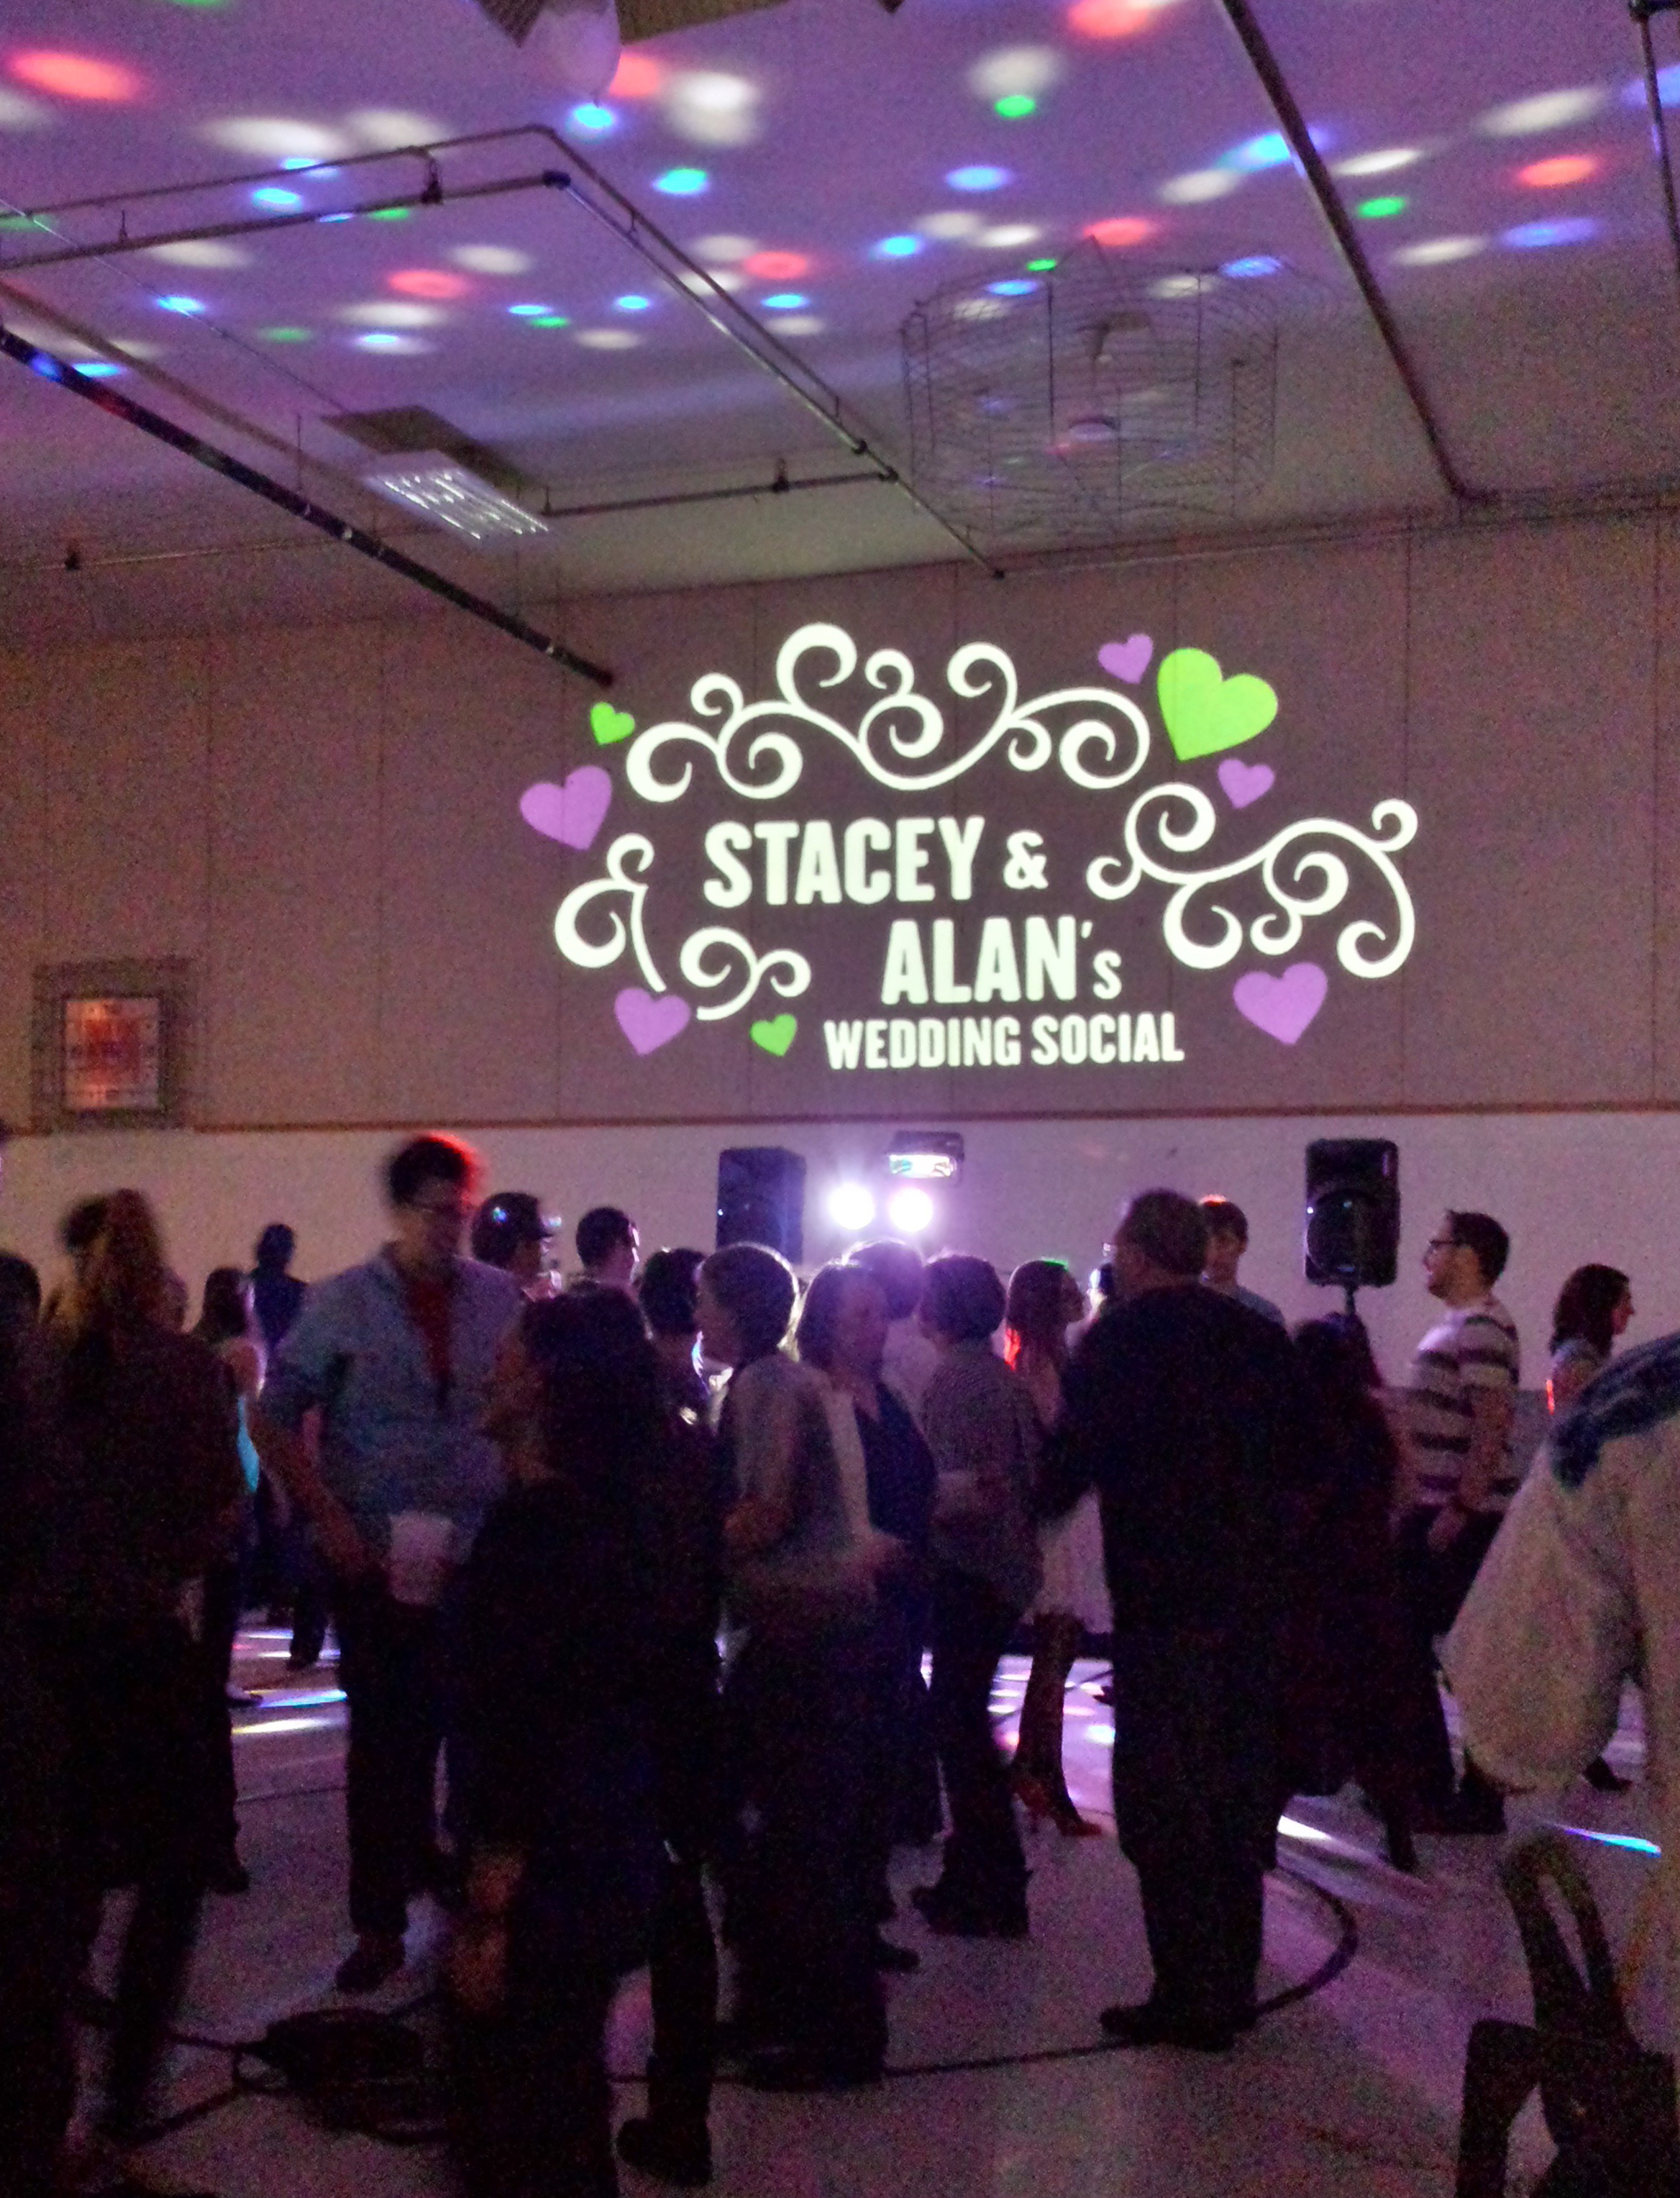 Wedding Social Banner In Lights